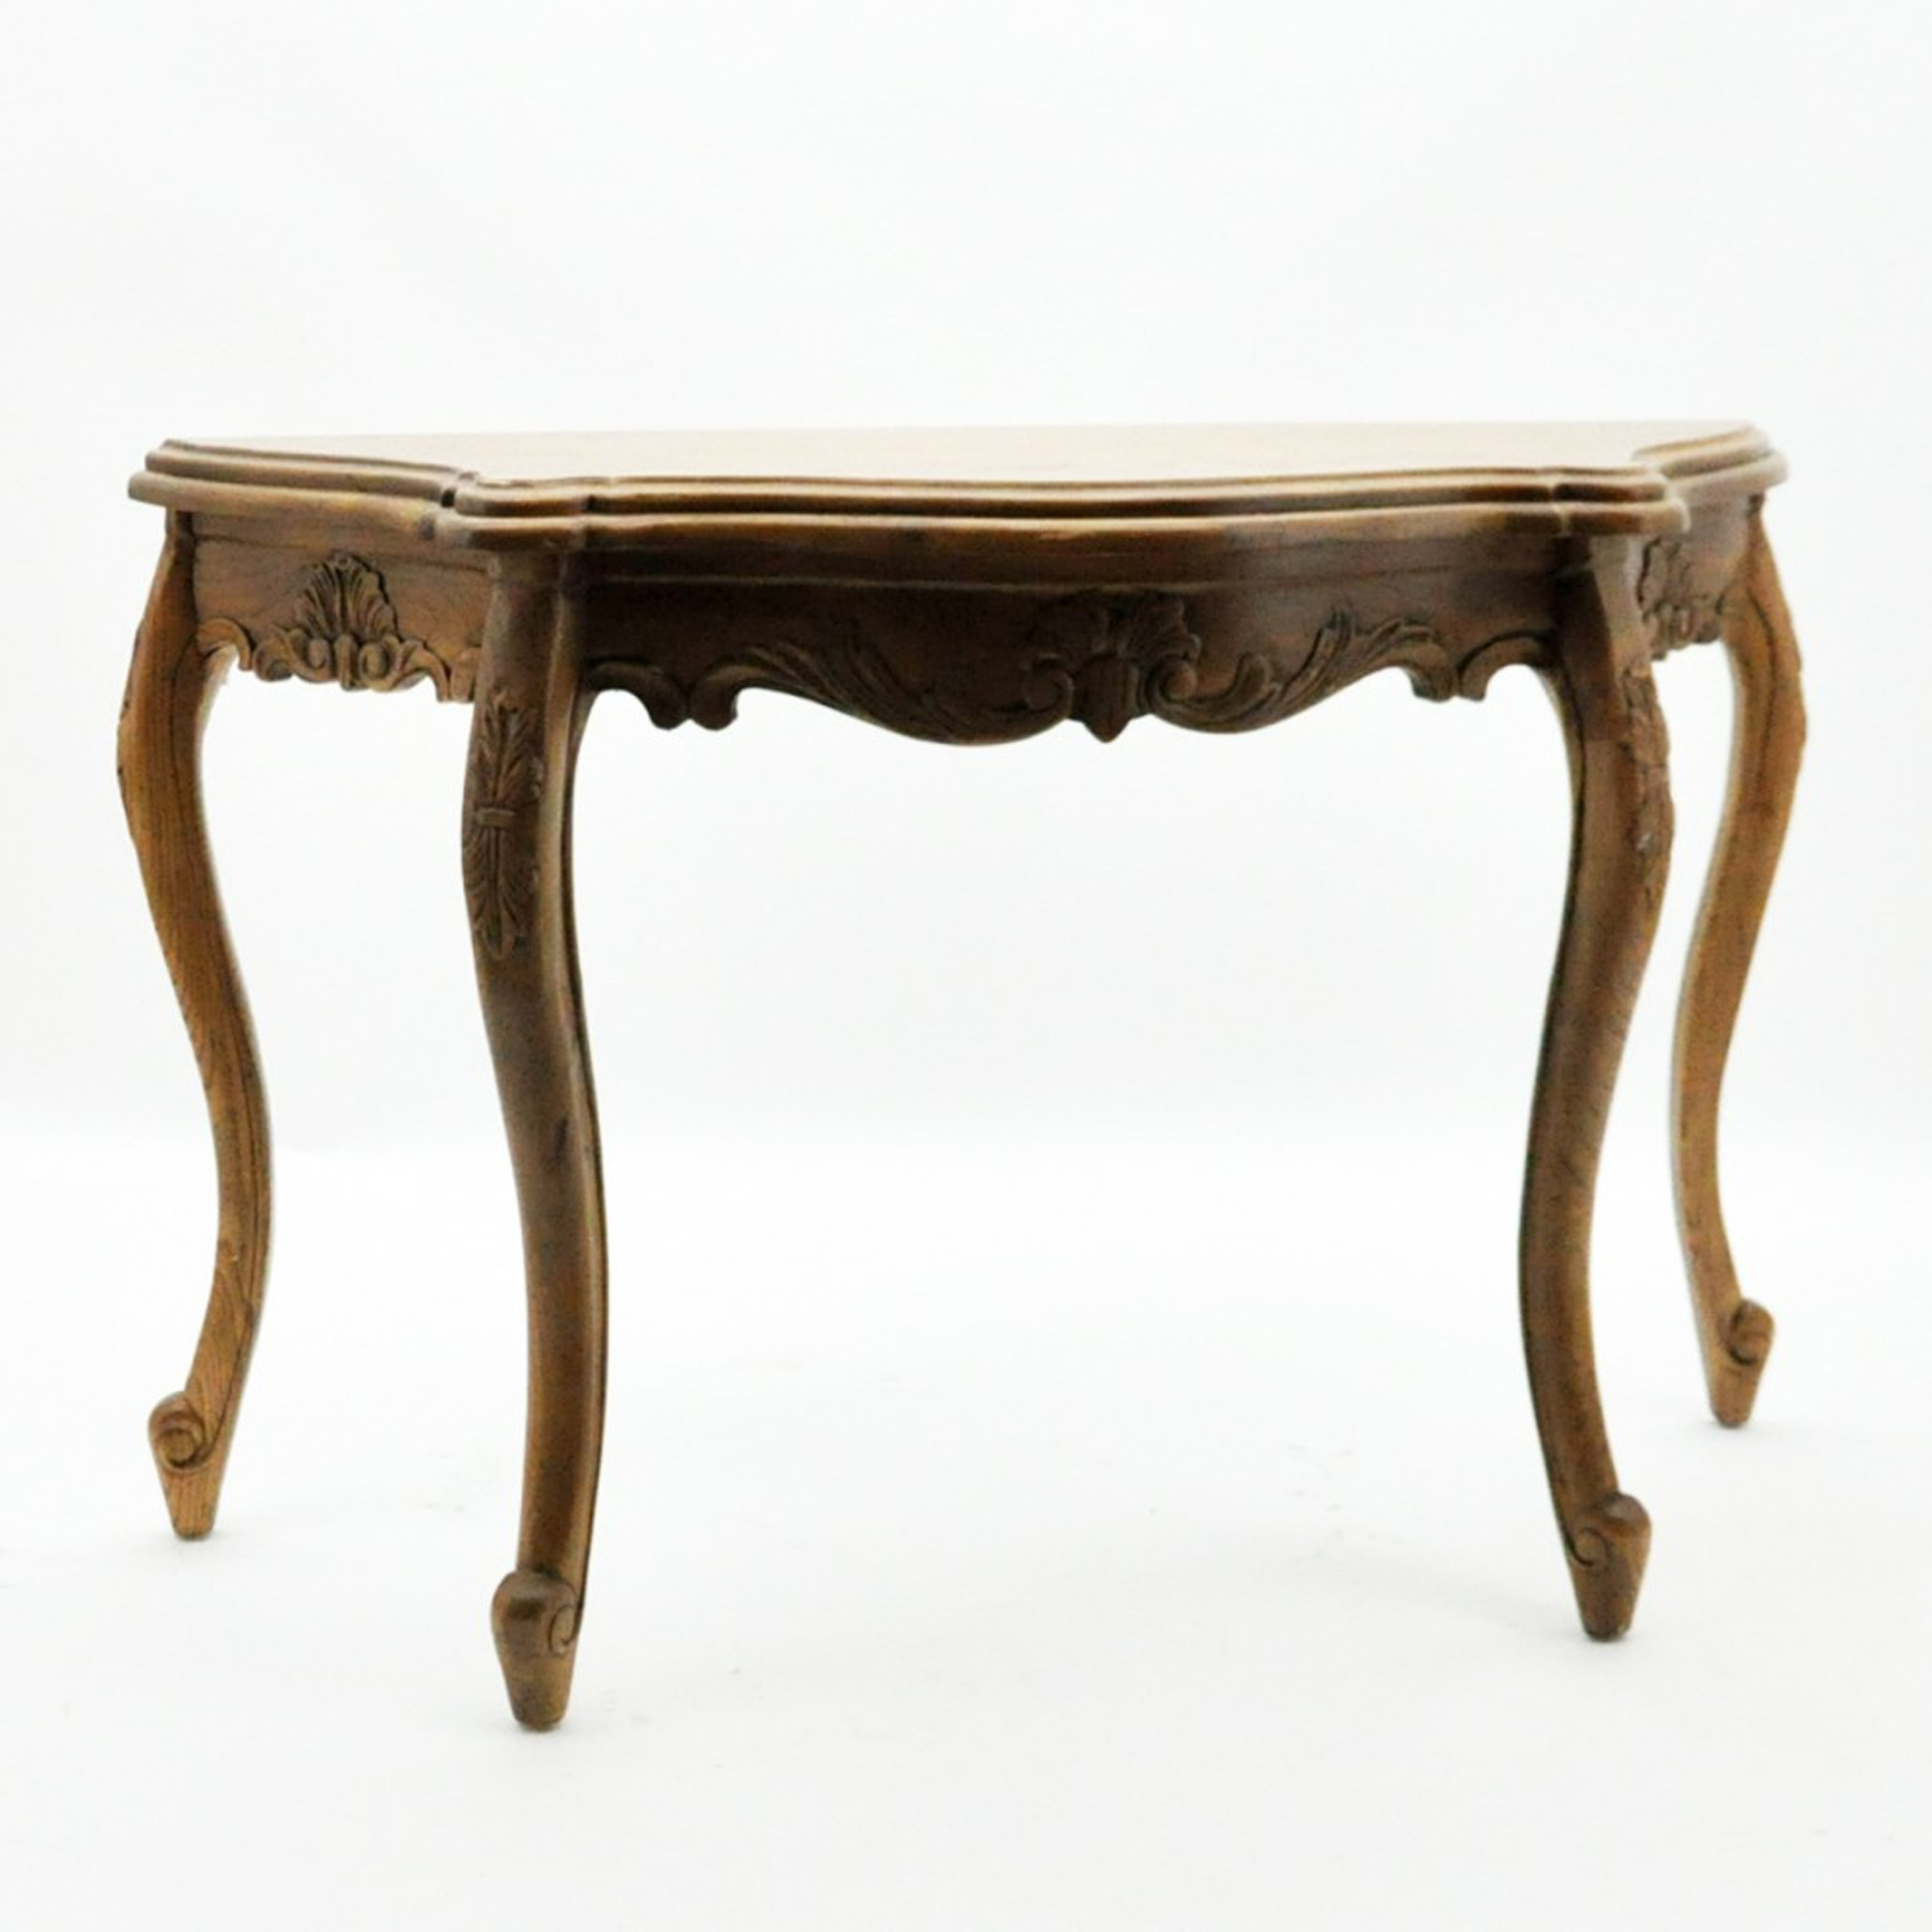 Miraculous Antique French Style Oak Console Table Andrewgaddart Wooden Chair Designs For Living Room Andrewgaddartcom